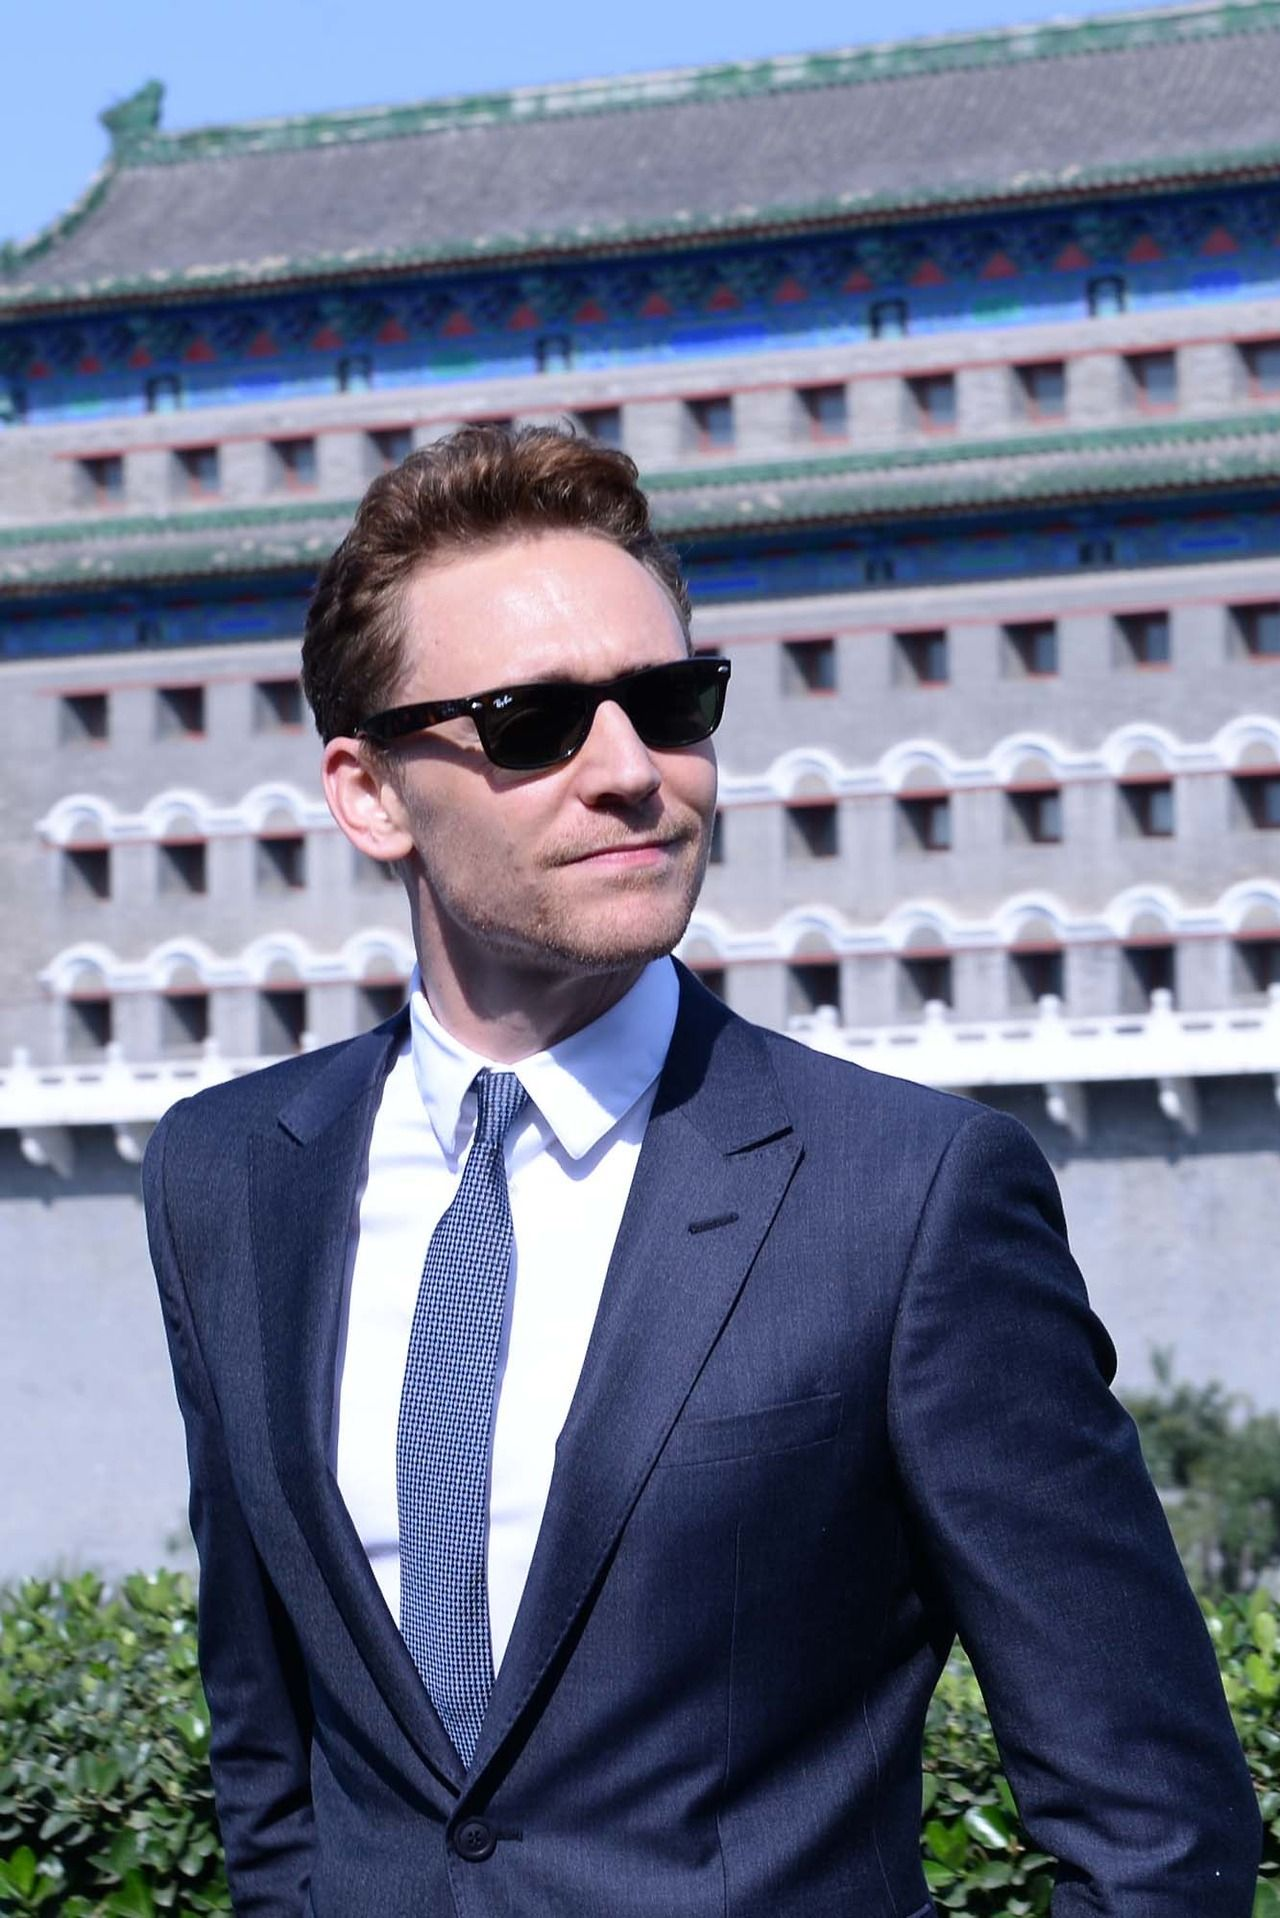 Tom Hiddleston poses for photos during a photocall in front of the Qianmen on October 11, 2013 in Beijing, China [HQ]